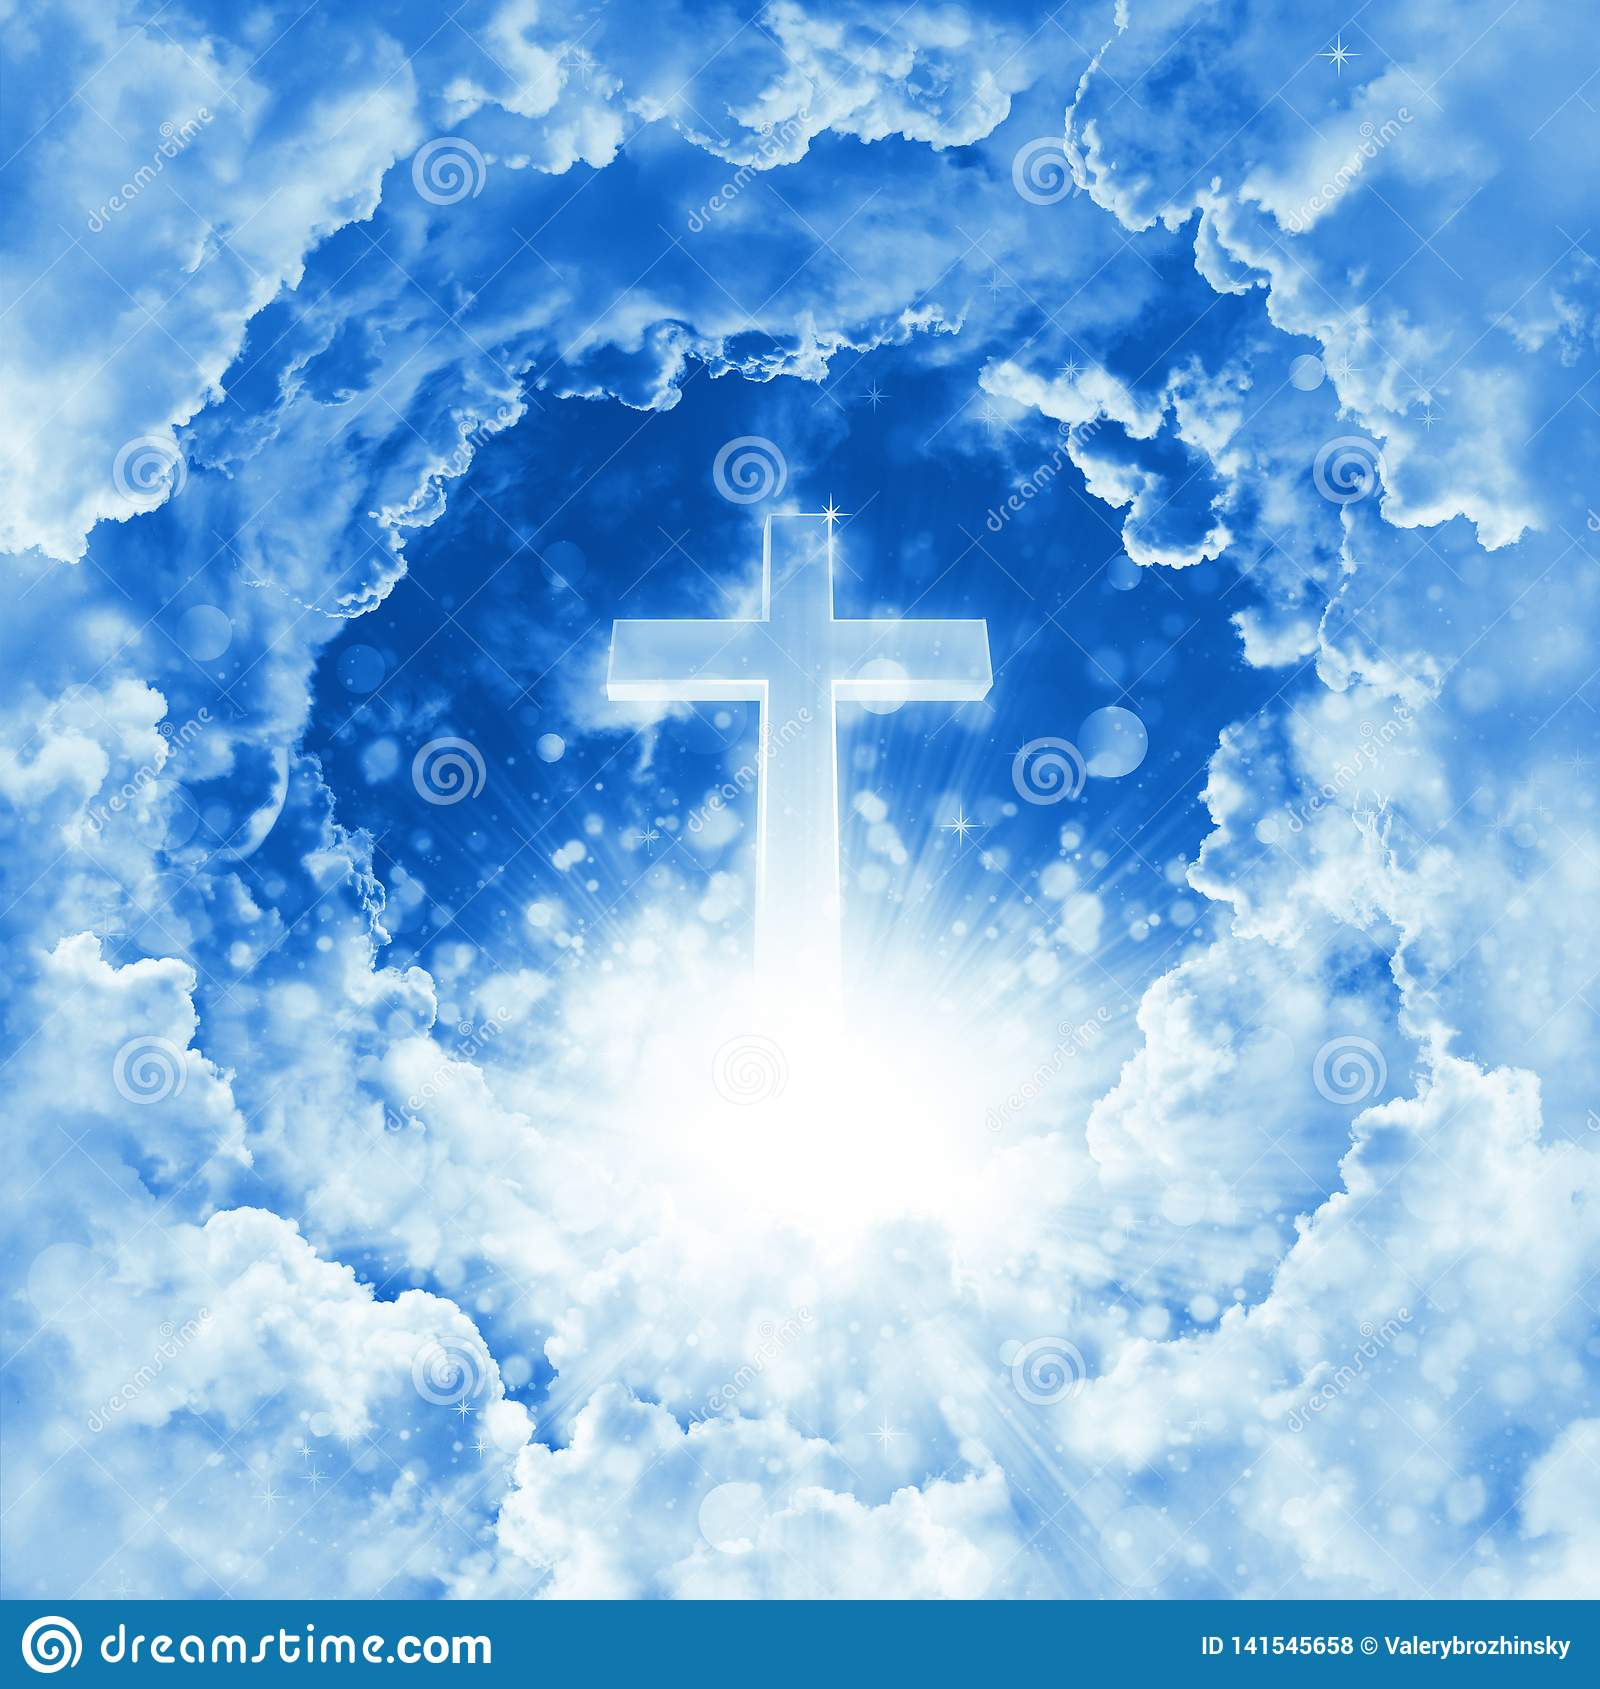 Concept of christian religion shining cross on the background of dramatic cloudy sky. Divine shining heaven, light. Sky with cross